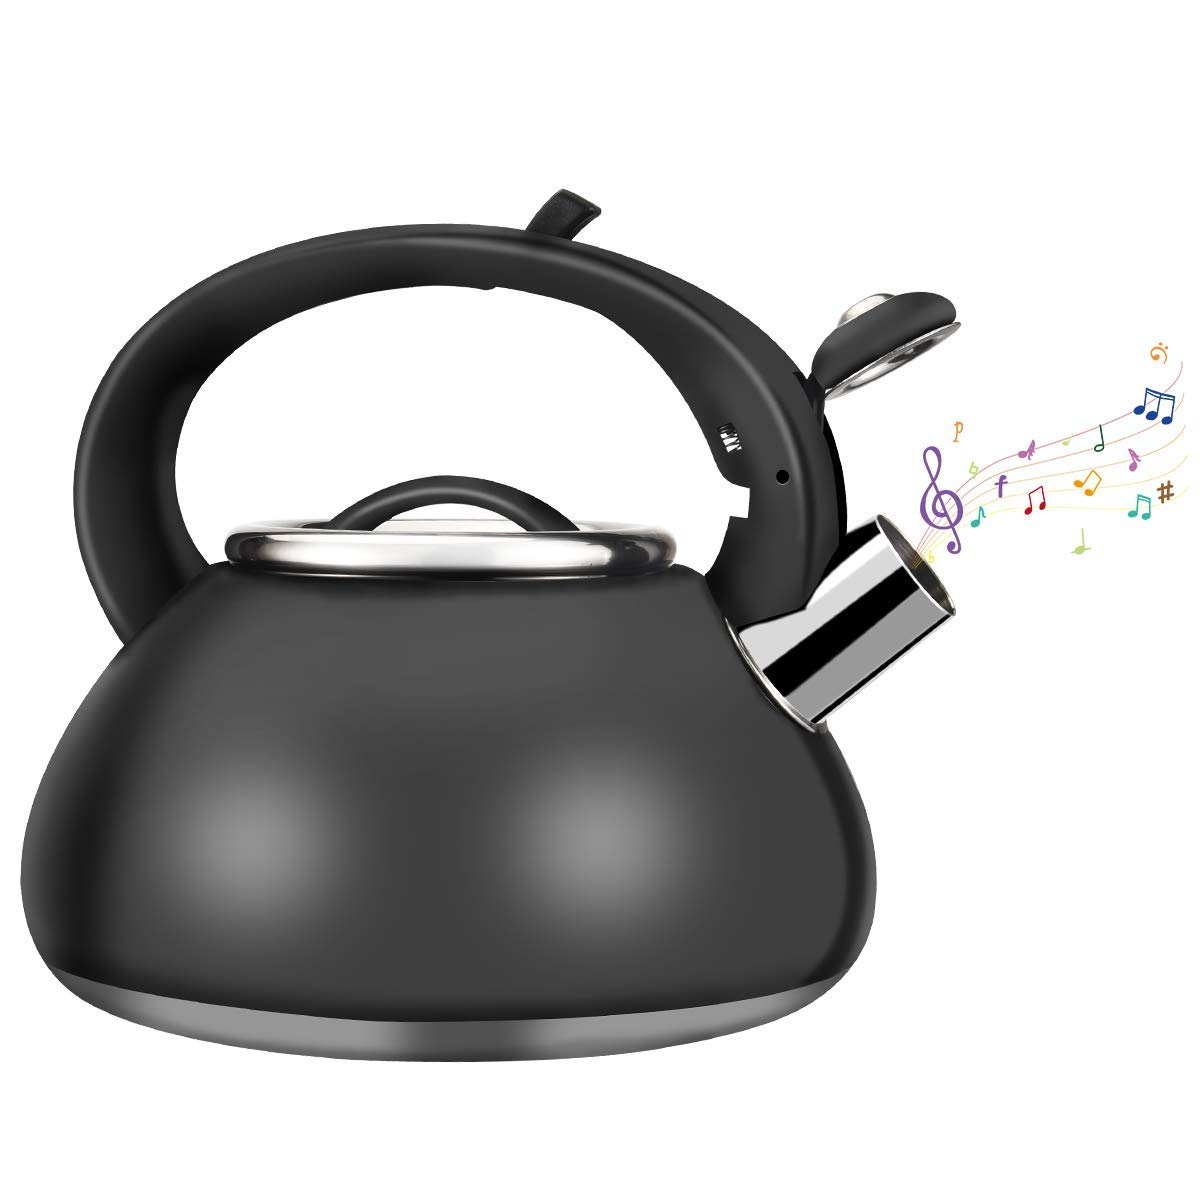 Whistling Stainless Steel Tea Kettle, Kinovation Food Grade Tea Pot with Heat-Proof Handle - Stovetop Suitable for All Heat Sources by Kinovation